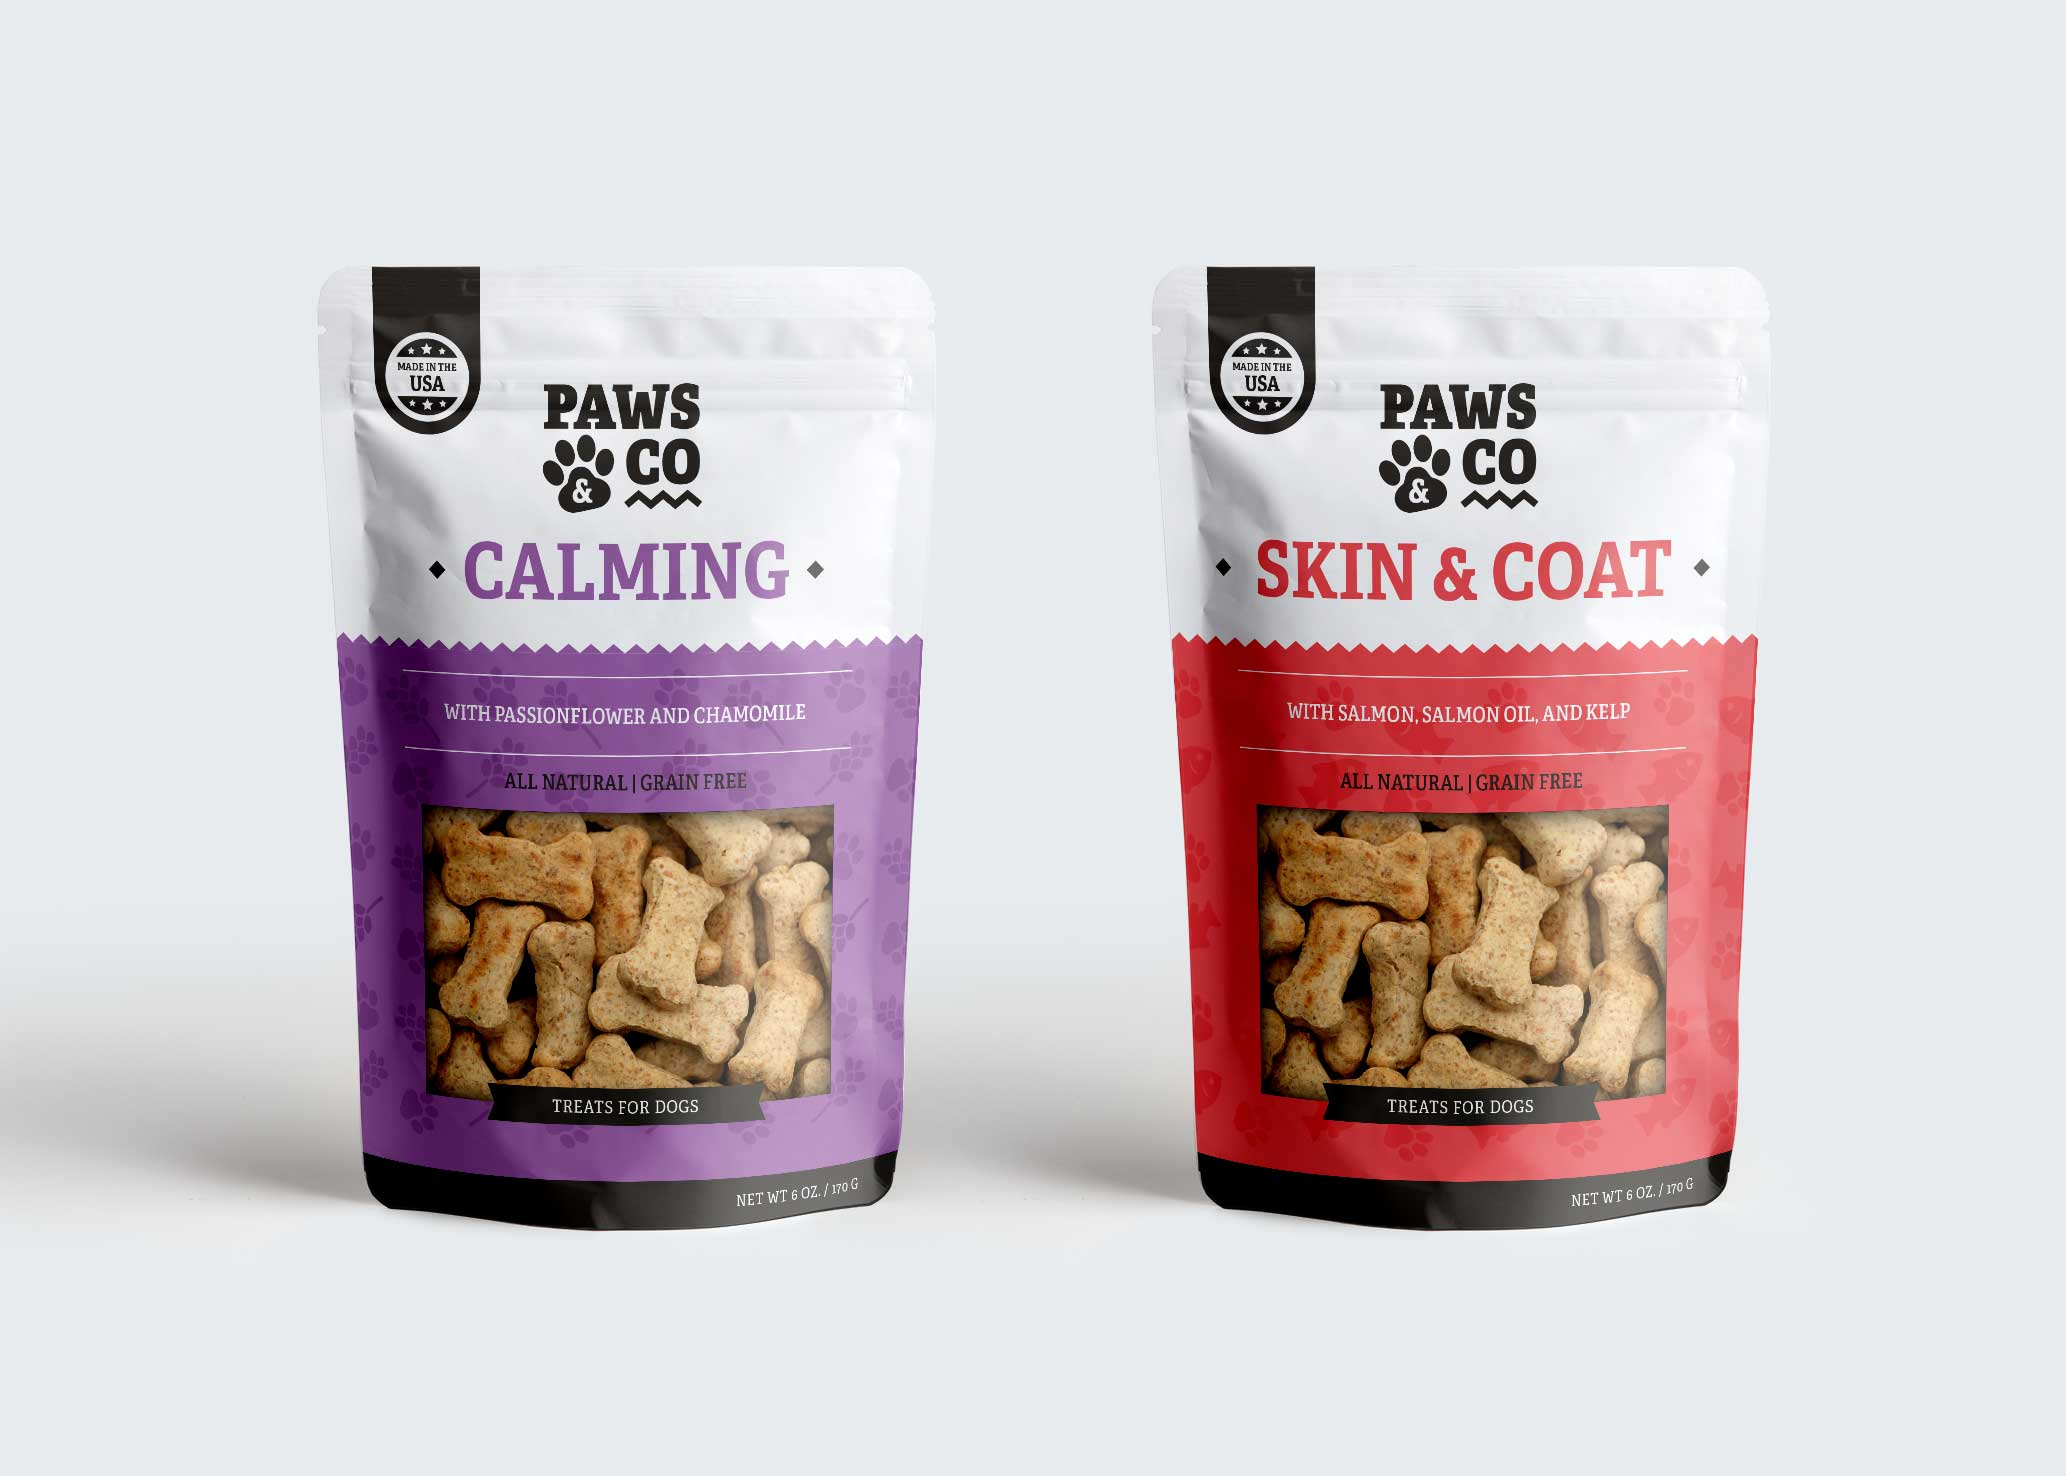 Paws & Co Packaging